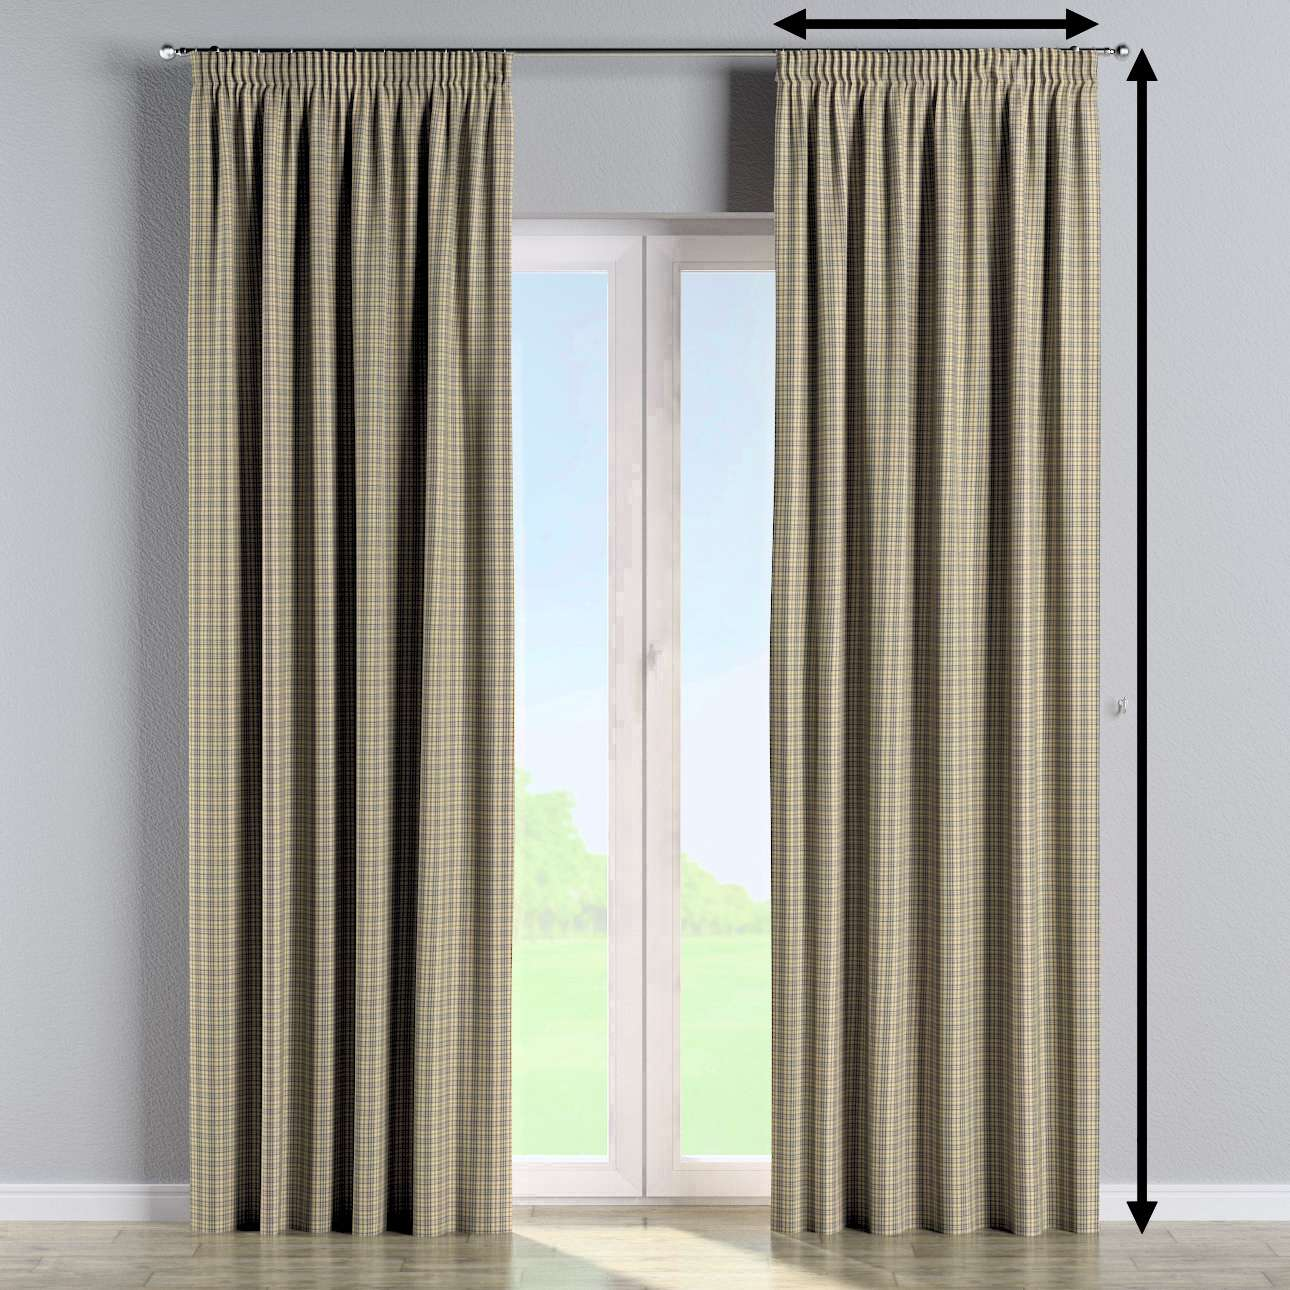 Pencil pleat curtain in collection Londres, fabric: 143-39